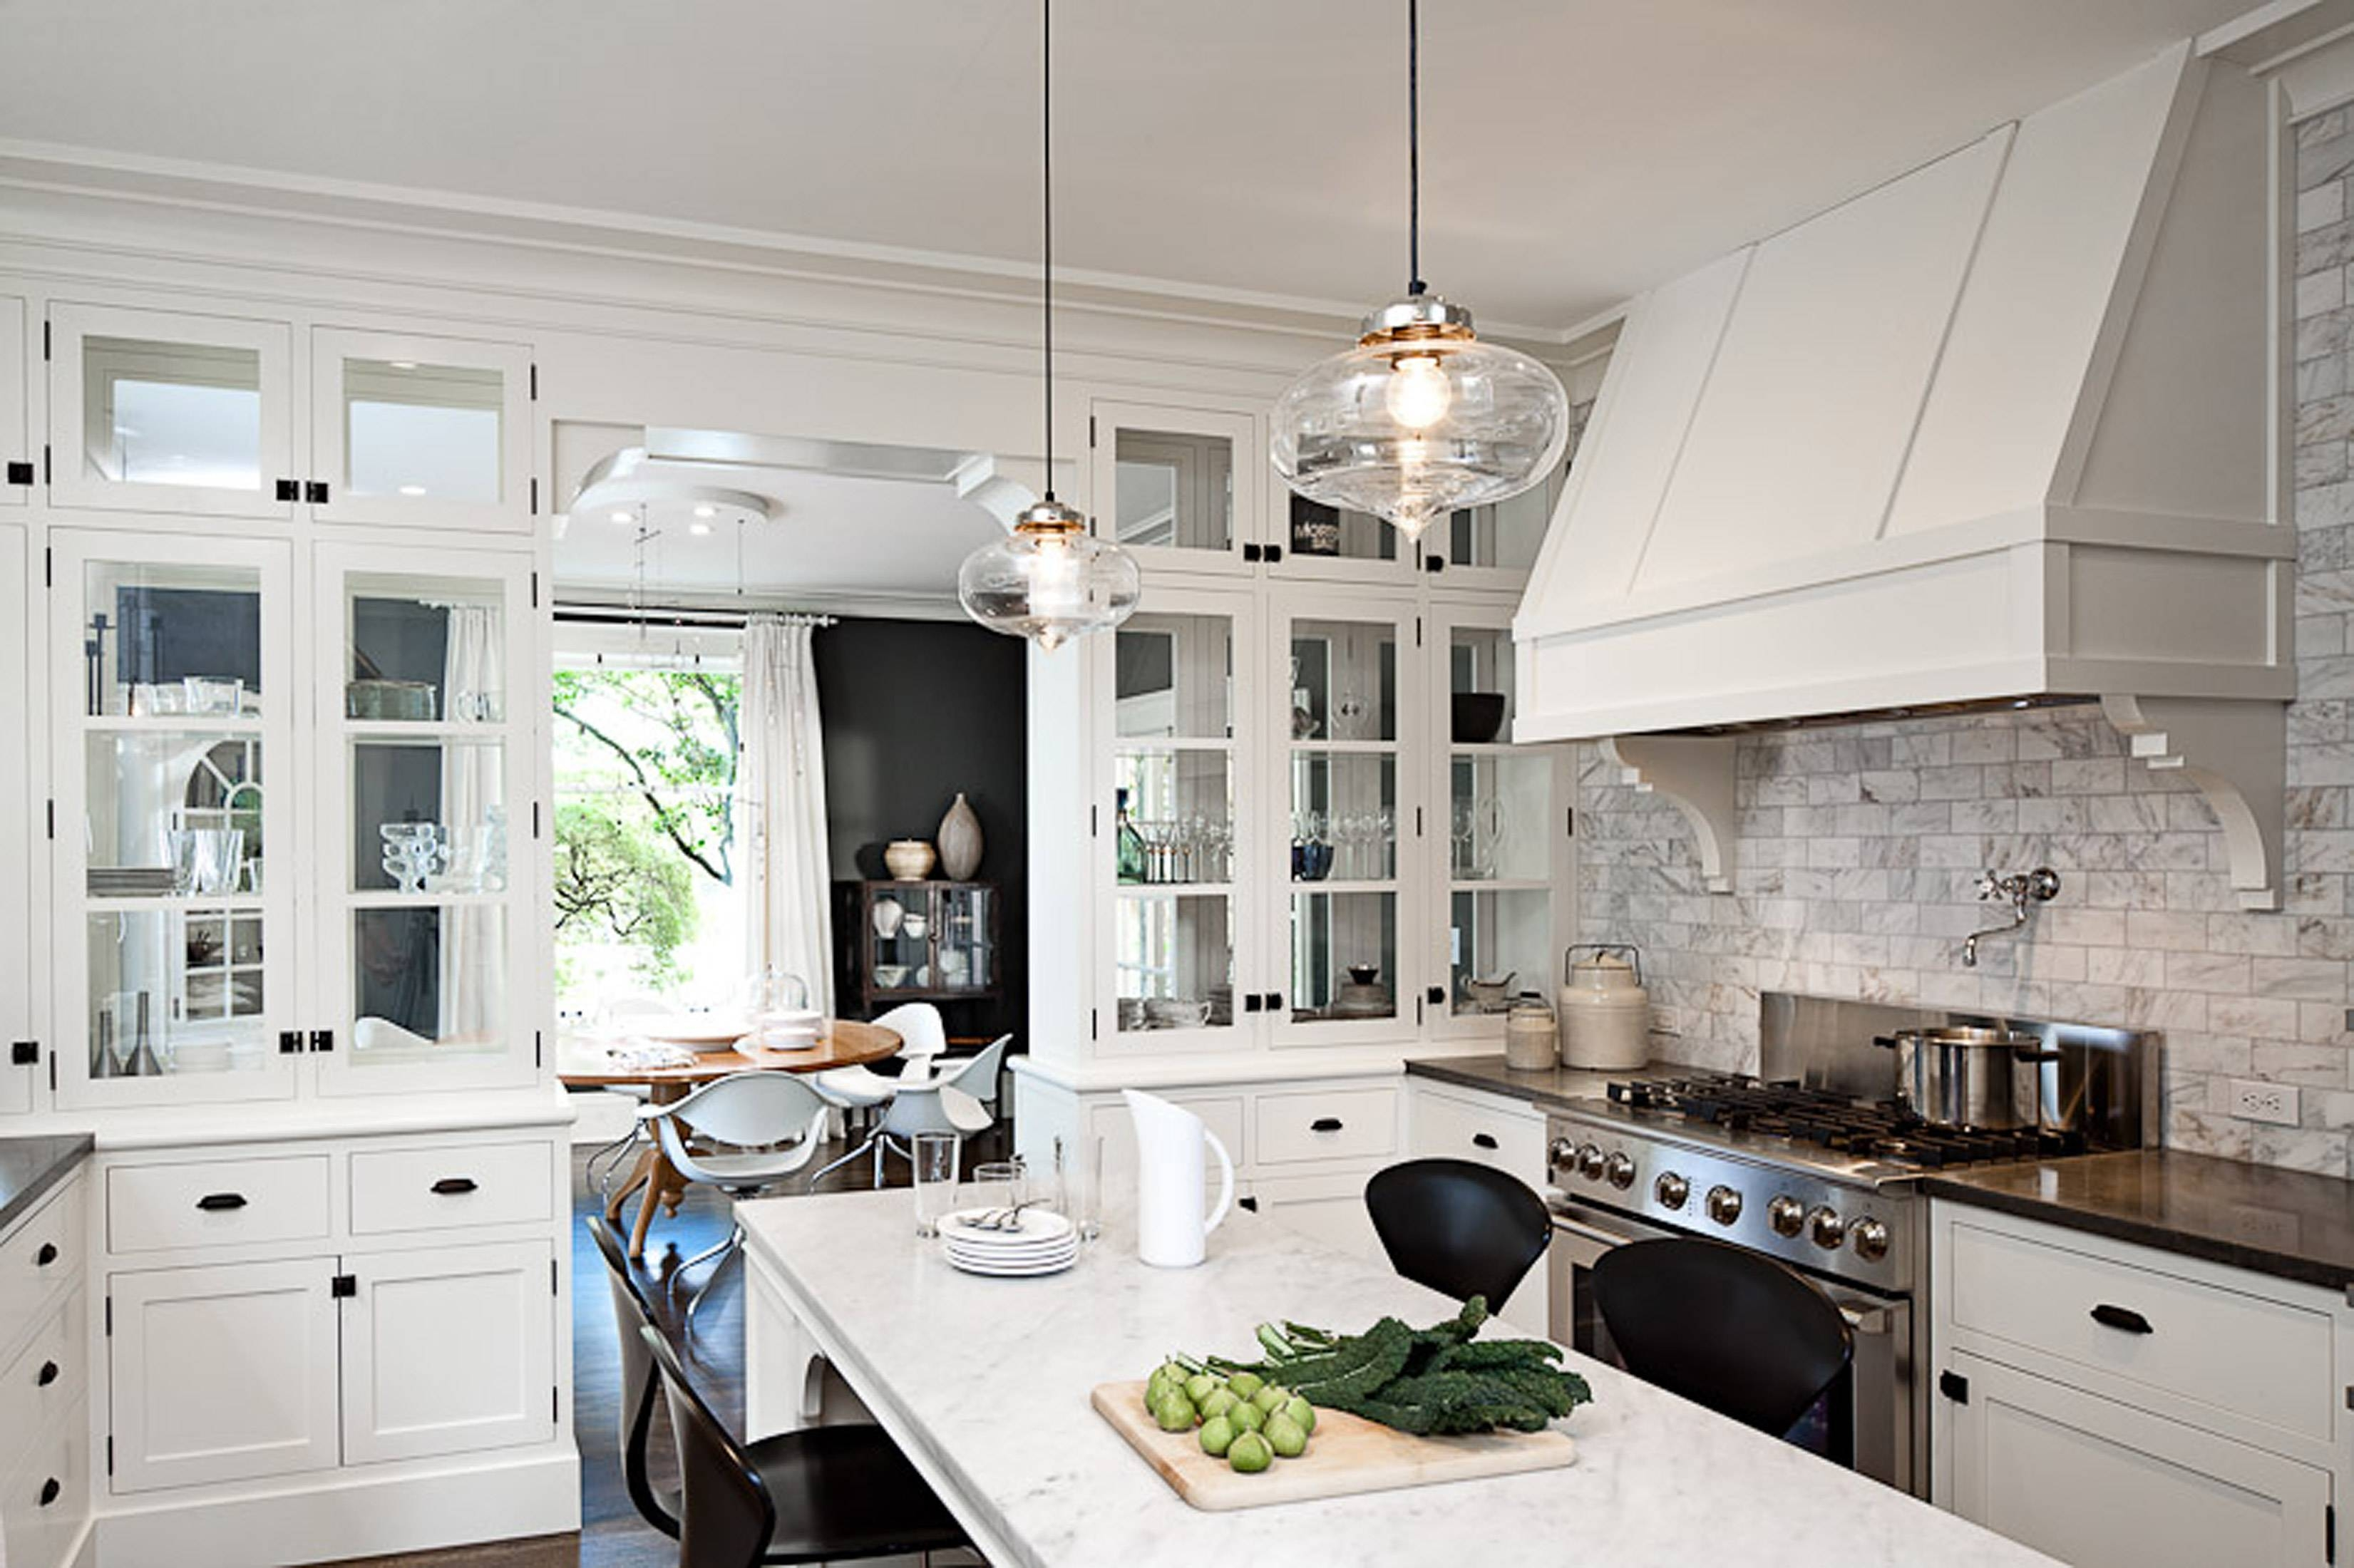 Pendant Lighting Ideas: Kitchen Island Pendant Light Useful throughout Island Pendant Lights (Image 15 of 15)